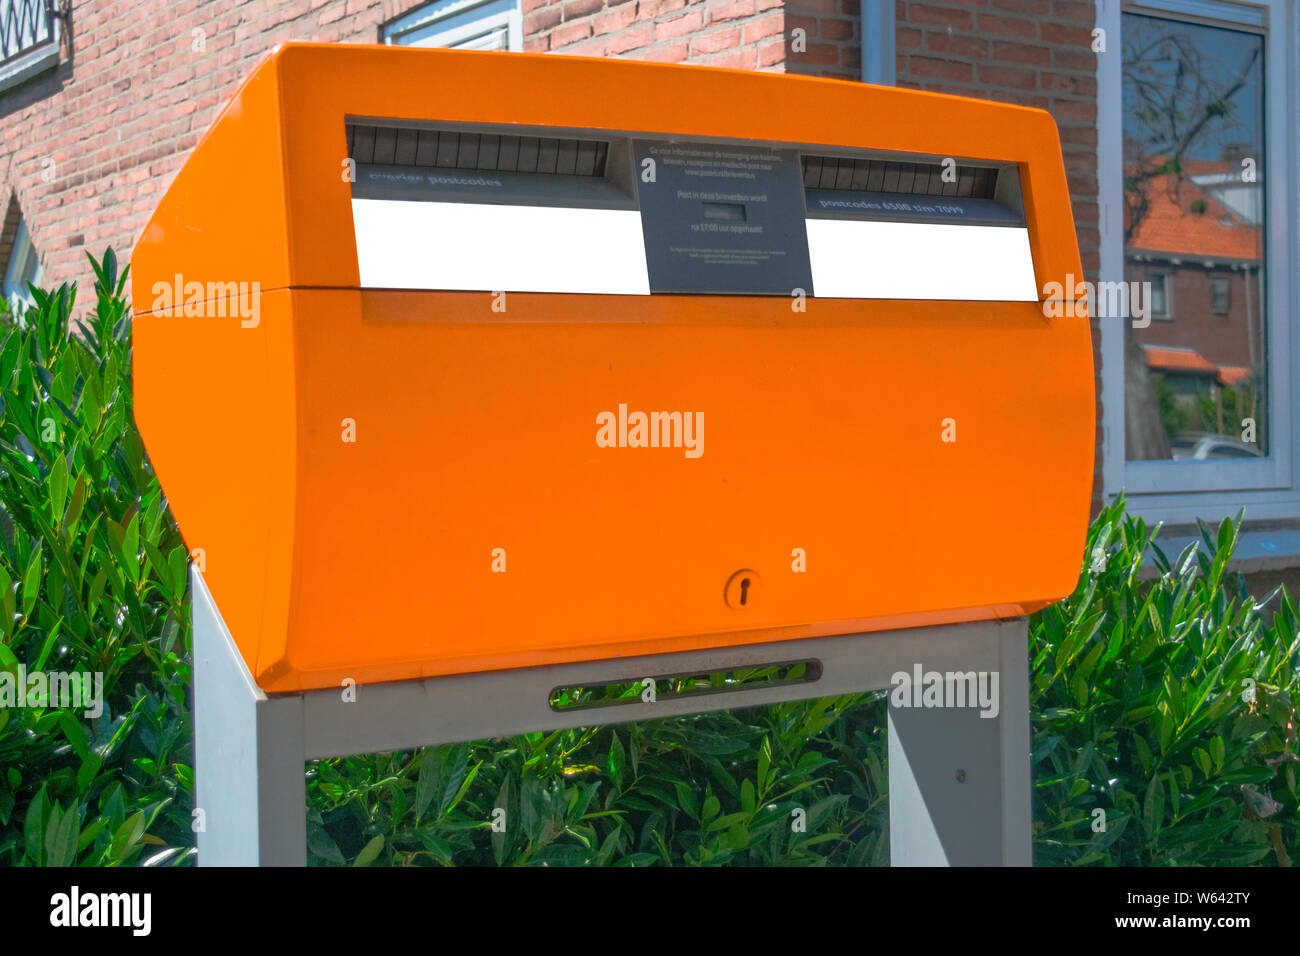 Posting a letter in the Netherlands - Orange Dutch letterbox Stock Photo